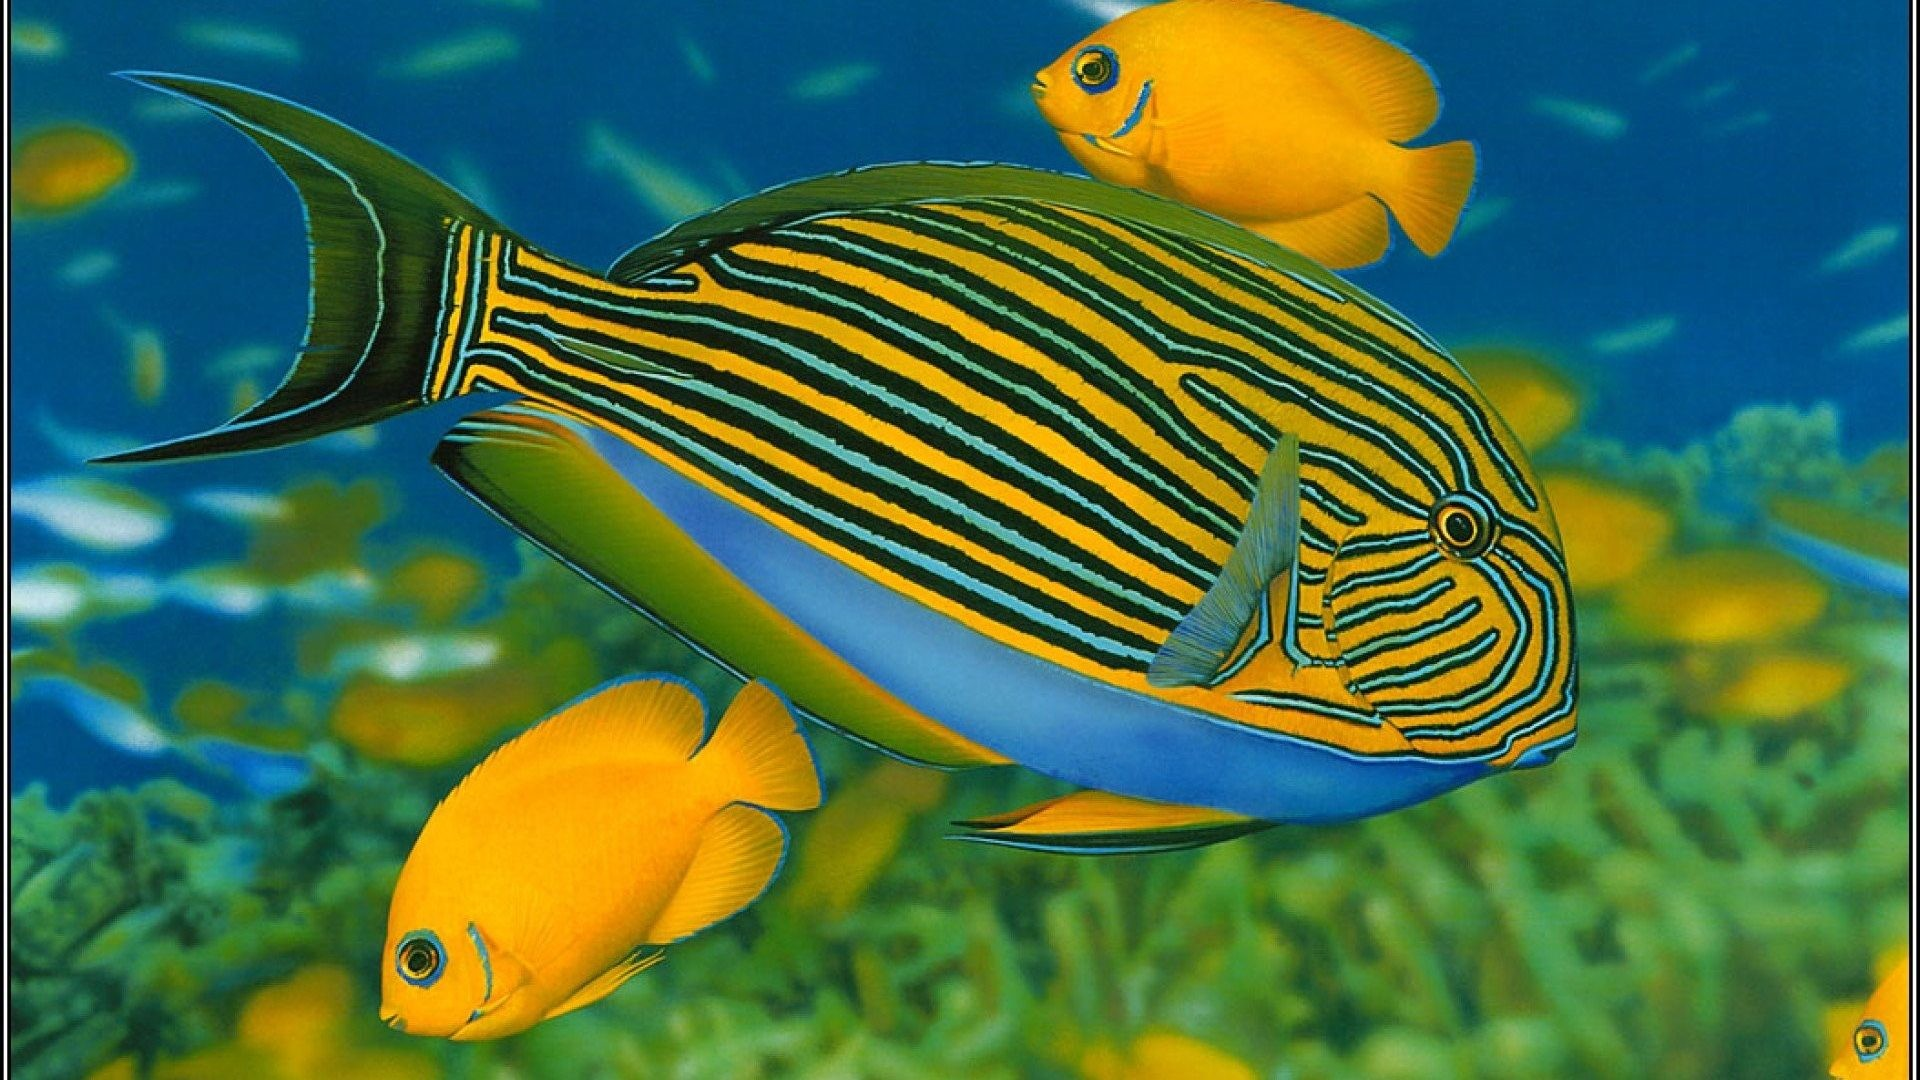 1920x1080 Fishes Sea Underwater Sealife Water Ocean Fish 3d Live Wallpaper Android